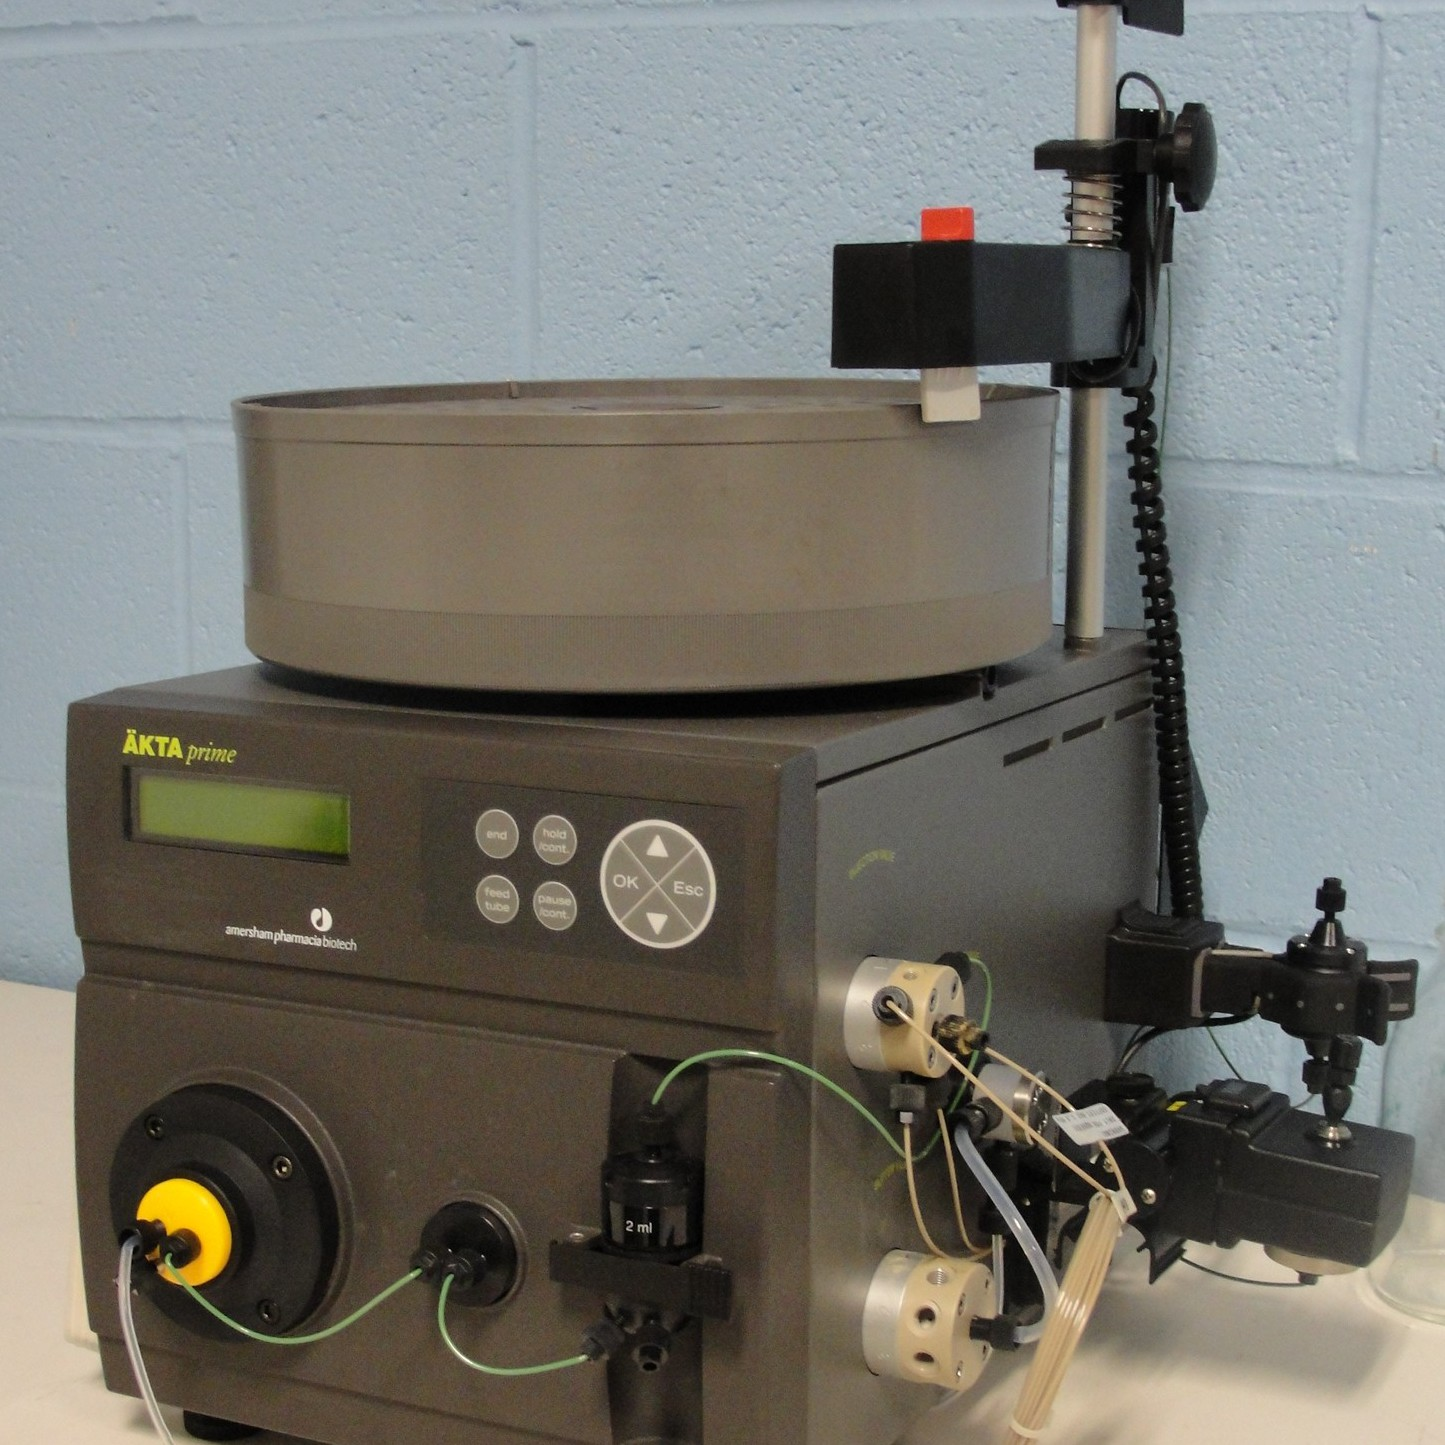 Amersham Biosciences AKTA Prime Low-Pressure Automated Liquid Chromatographic System Image